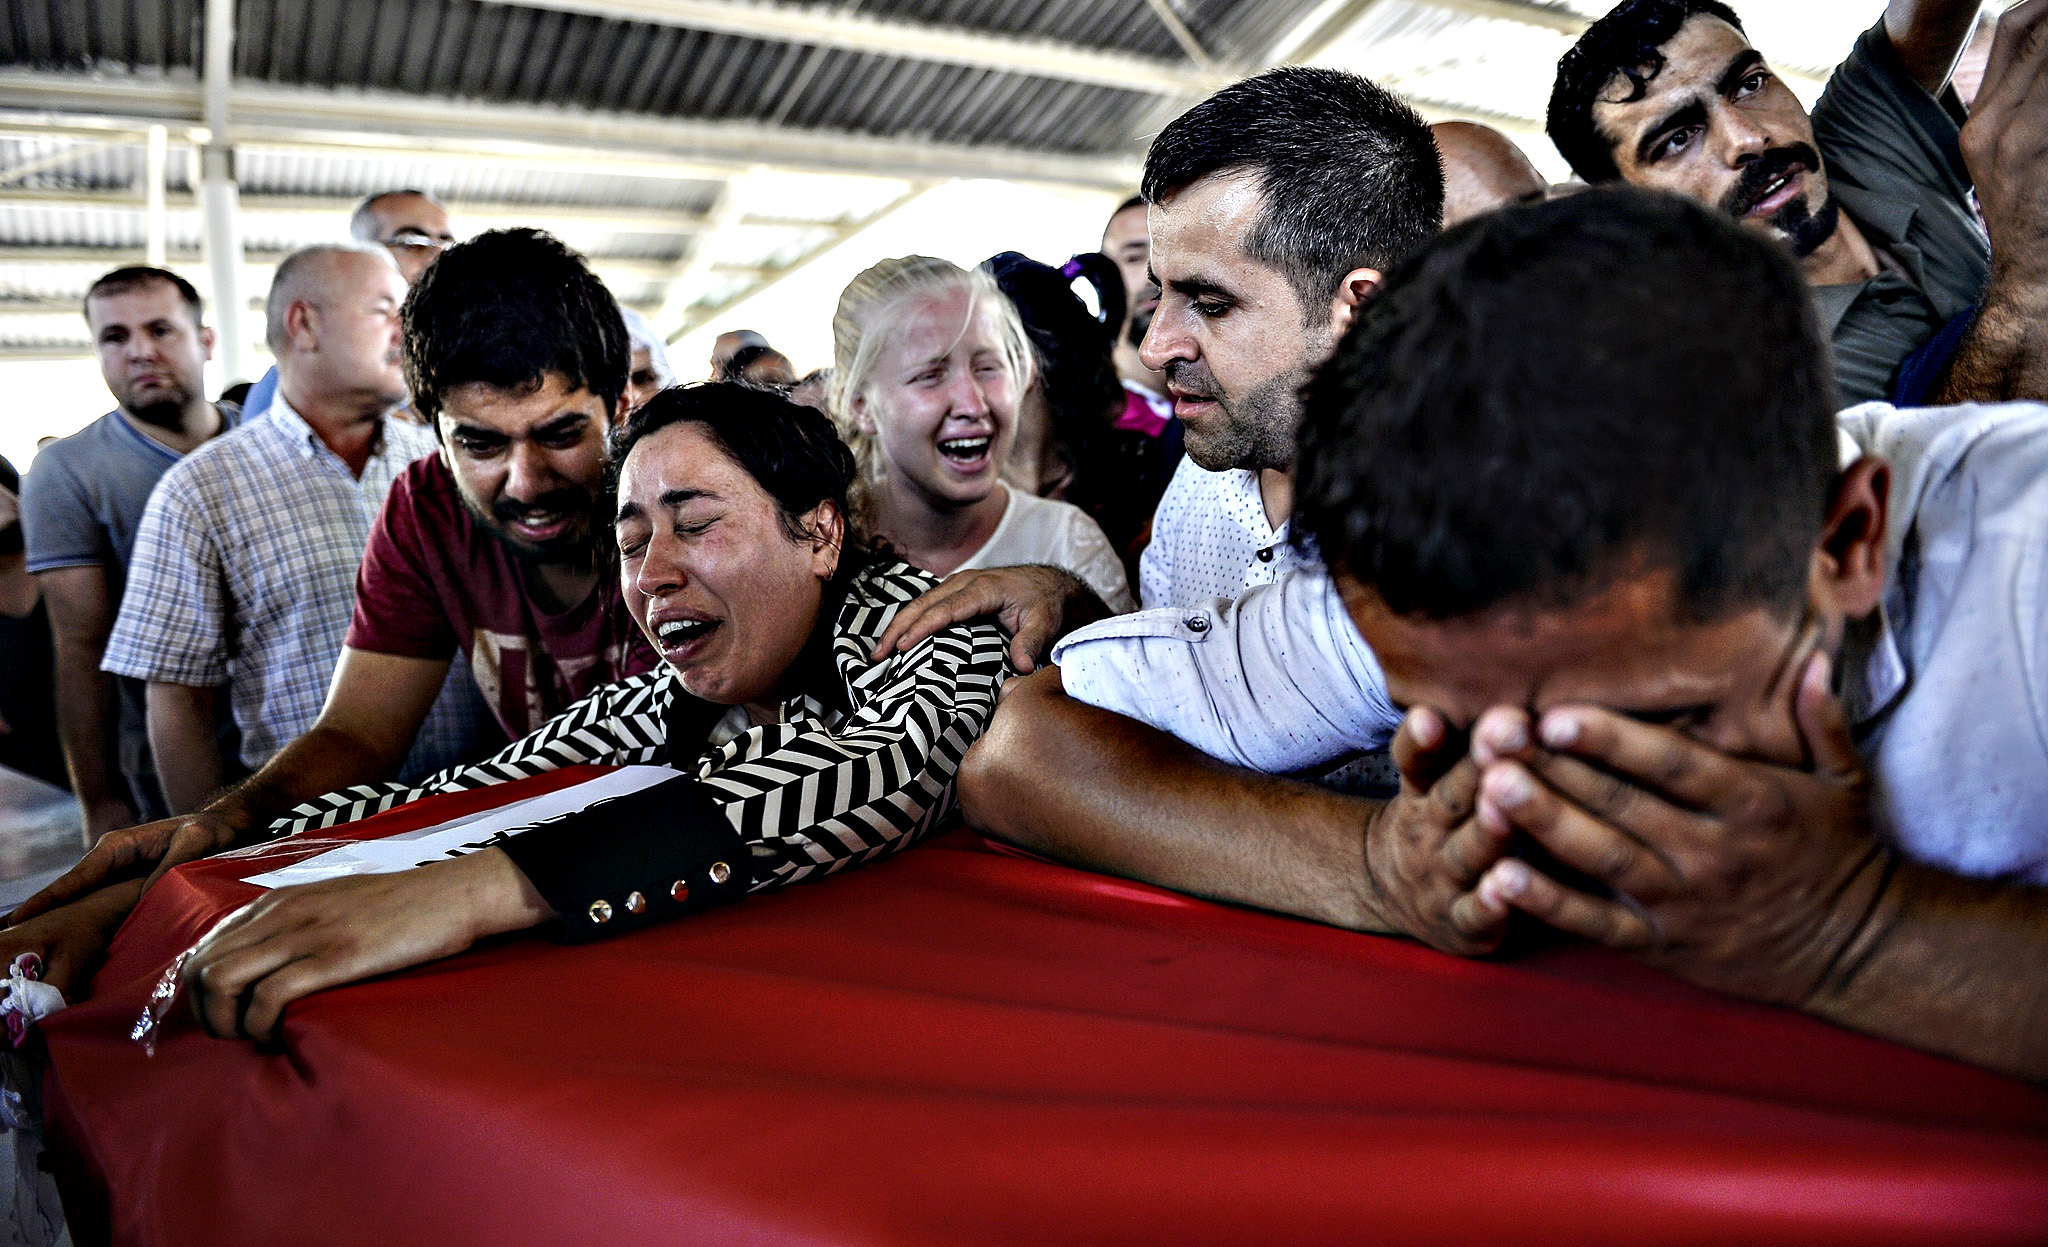 Mourners react over coffins in Gaziantep on July 21, 2015, during a funeral ceremony for victims following a suicide bomb attack the day before which killed at least 31 in the southern Turkish town of Suruc. A suspected Islamic State suicide bomber killed at least 31 people in an attack on a Turkish cultural centre in the southern town of Suruc, where activists had gathered to prepare for an aid mission in the nearby Syrian town of Kobane. It was one of the deadliest attacks in Turkey in recent years and the first time the government has directly accused the IS group of carrying out an act of terror on Turkish soil